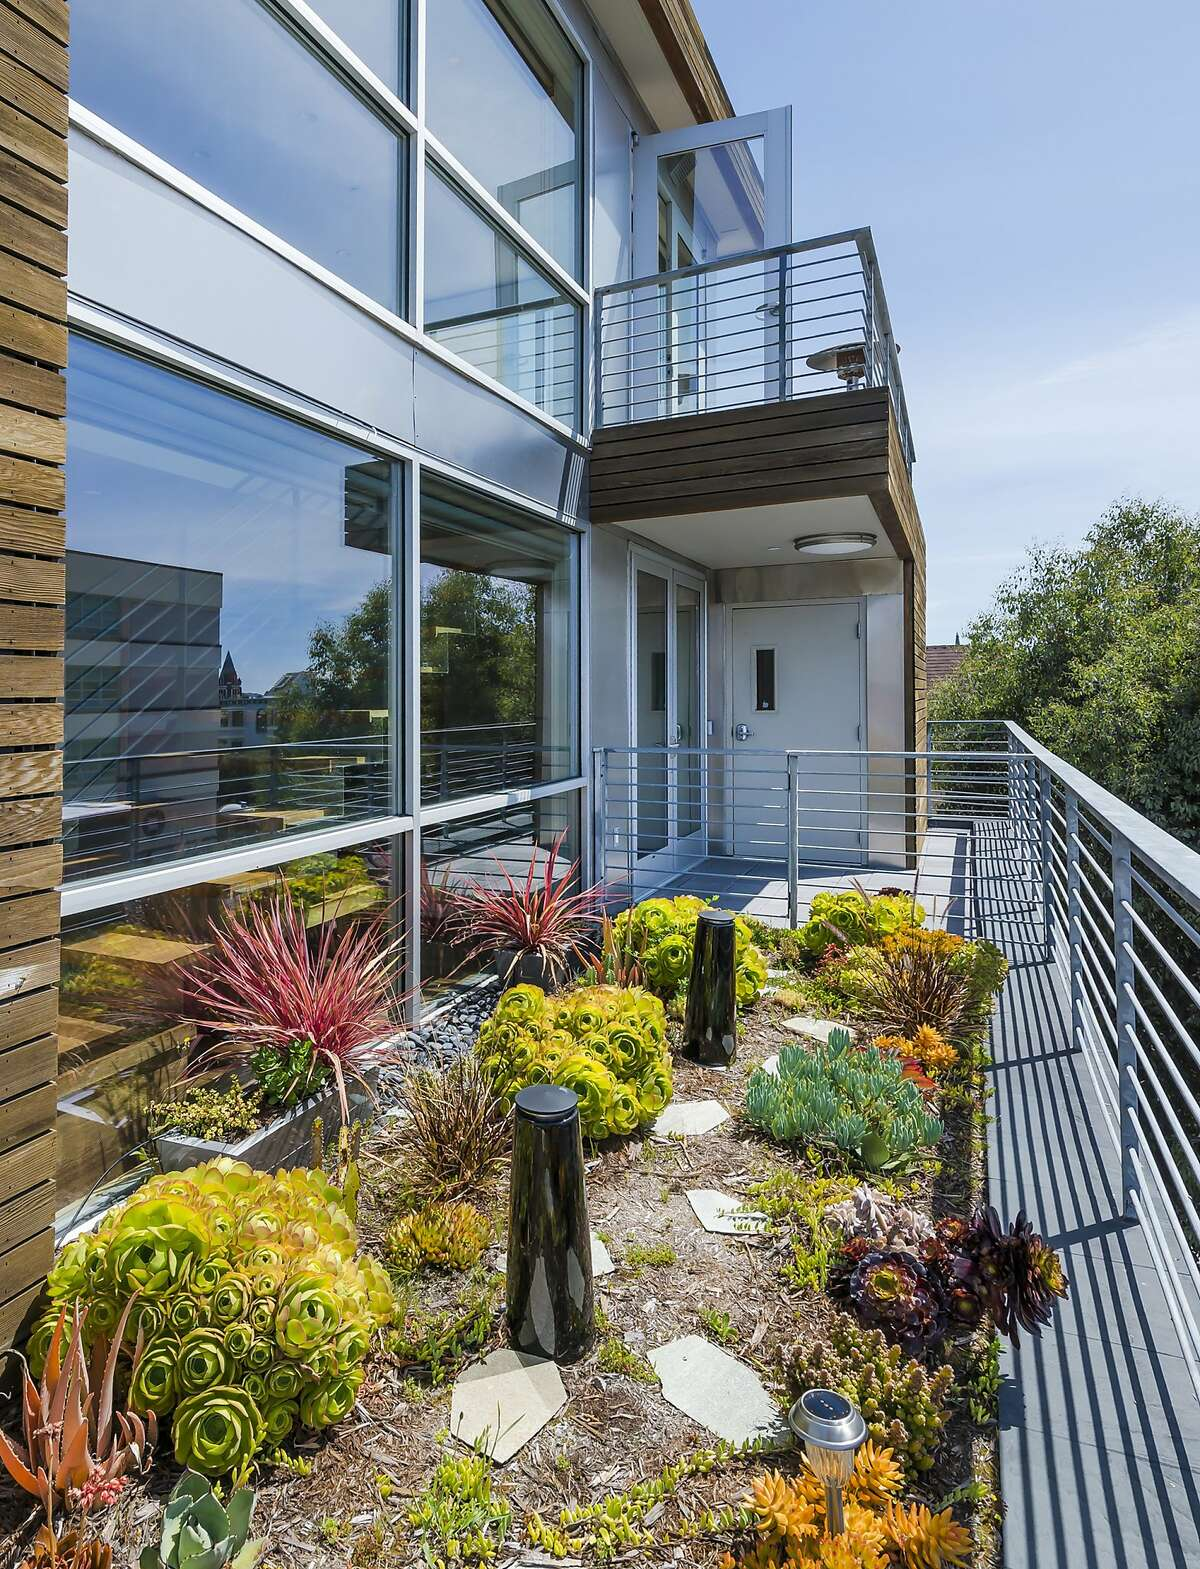 3280 22nd St., Unit D, in the Mission District is a penthouse available for $2.495 million.